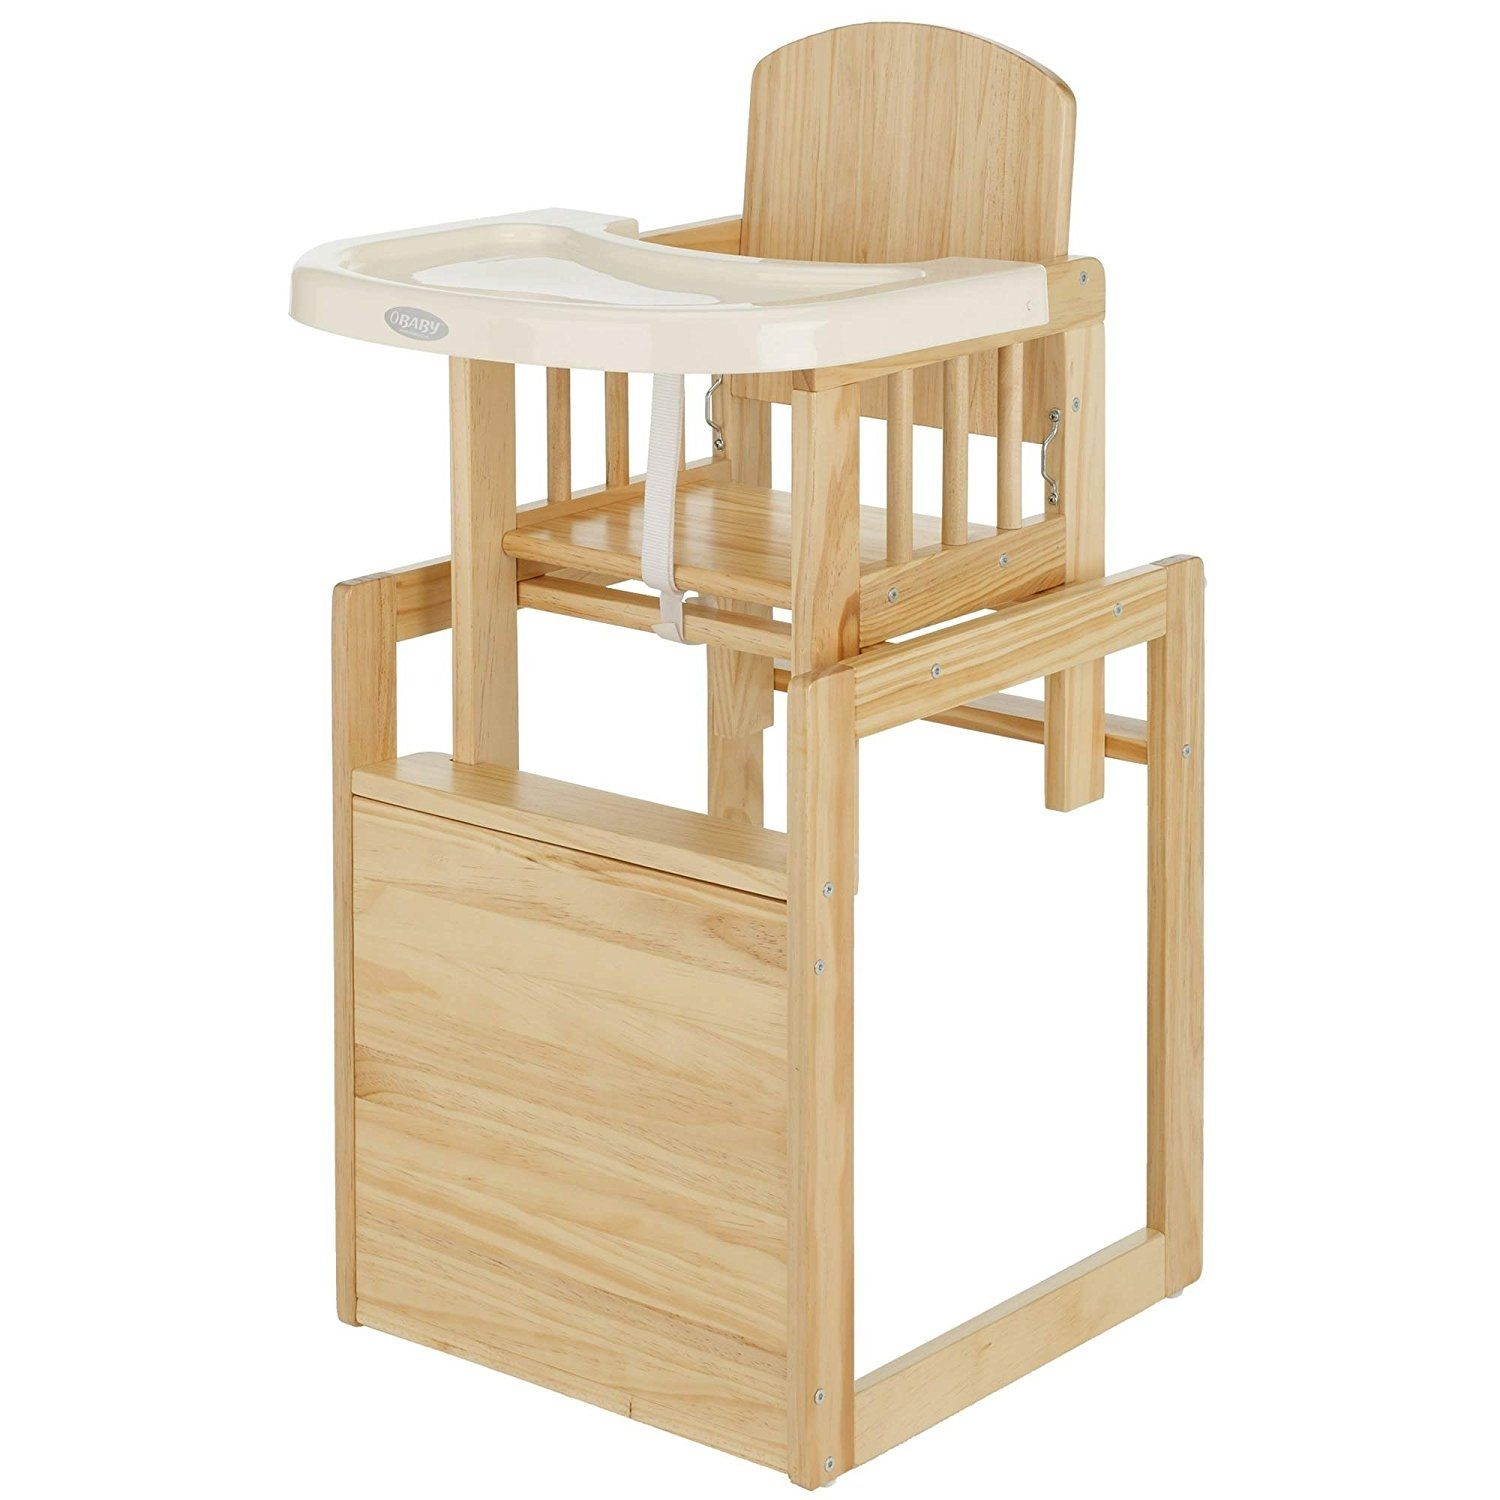 Wooden High Chair Turns Into Chair